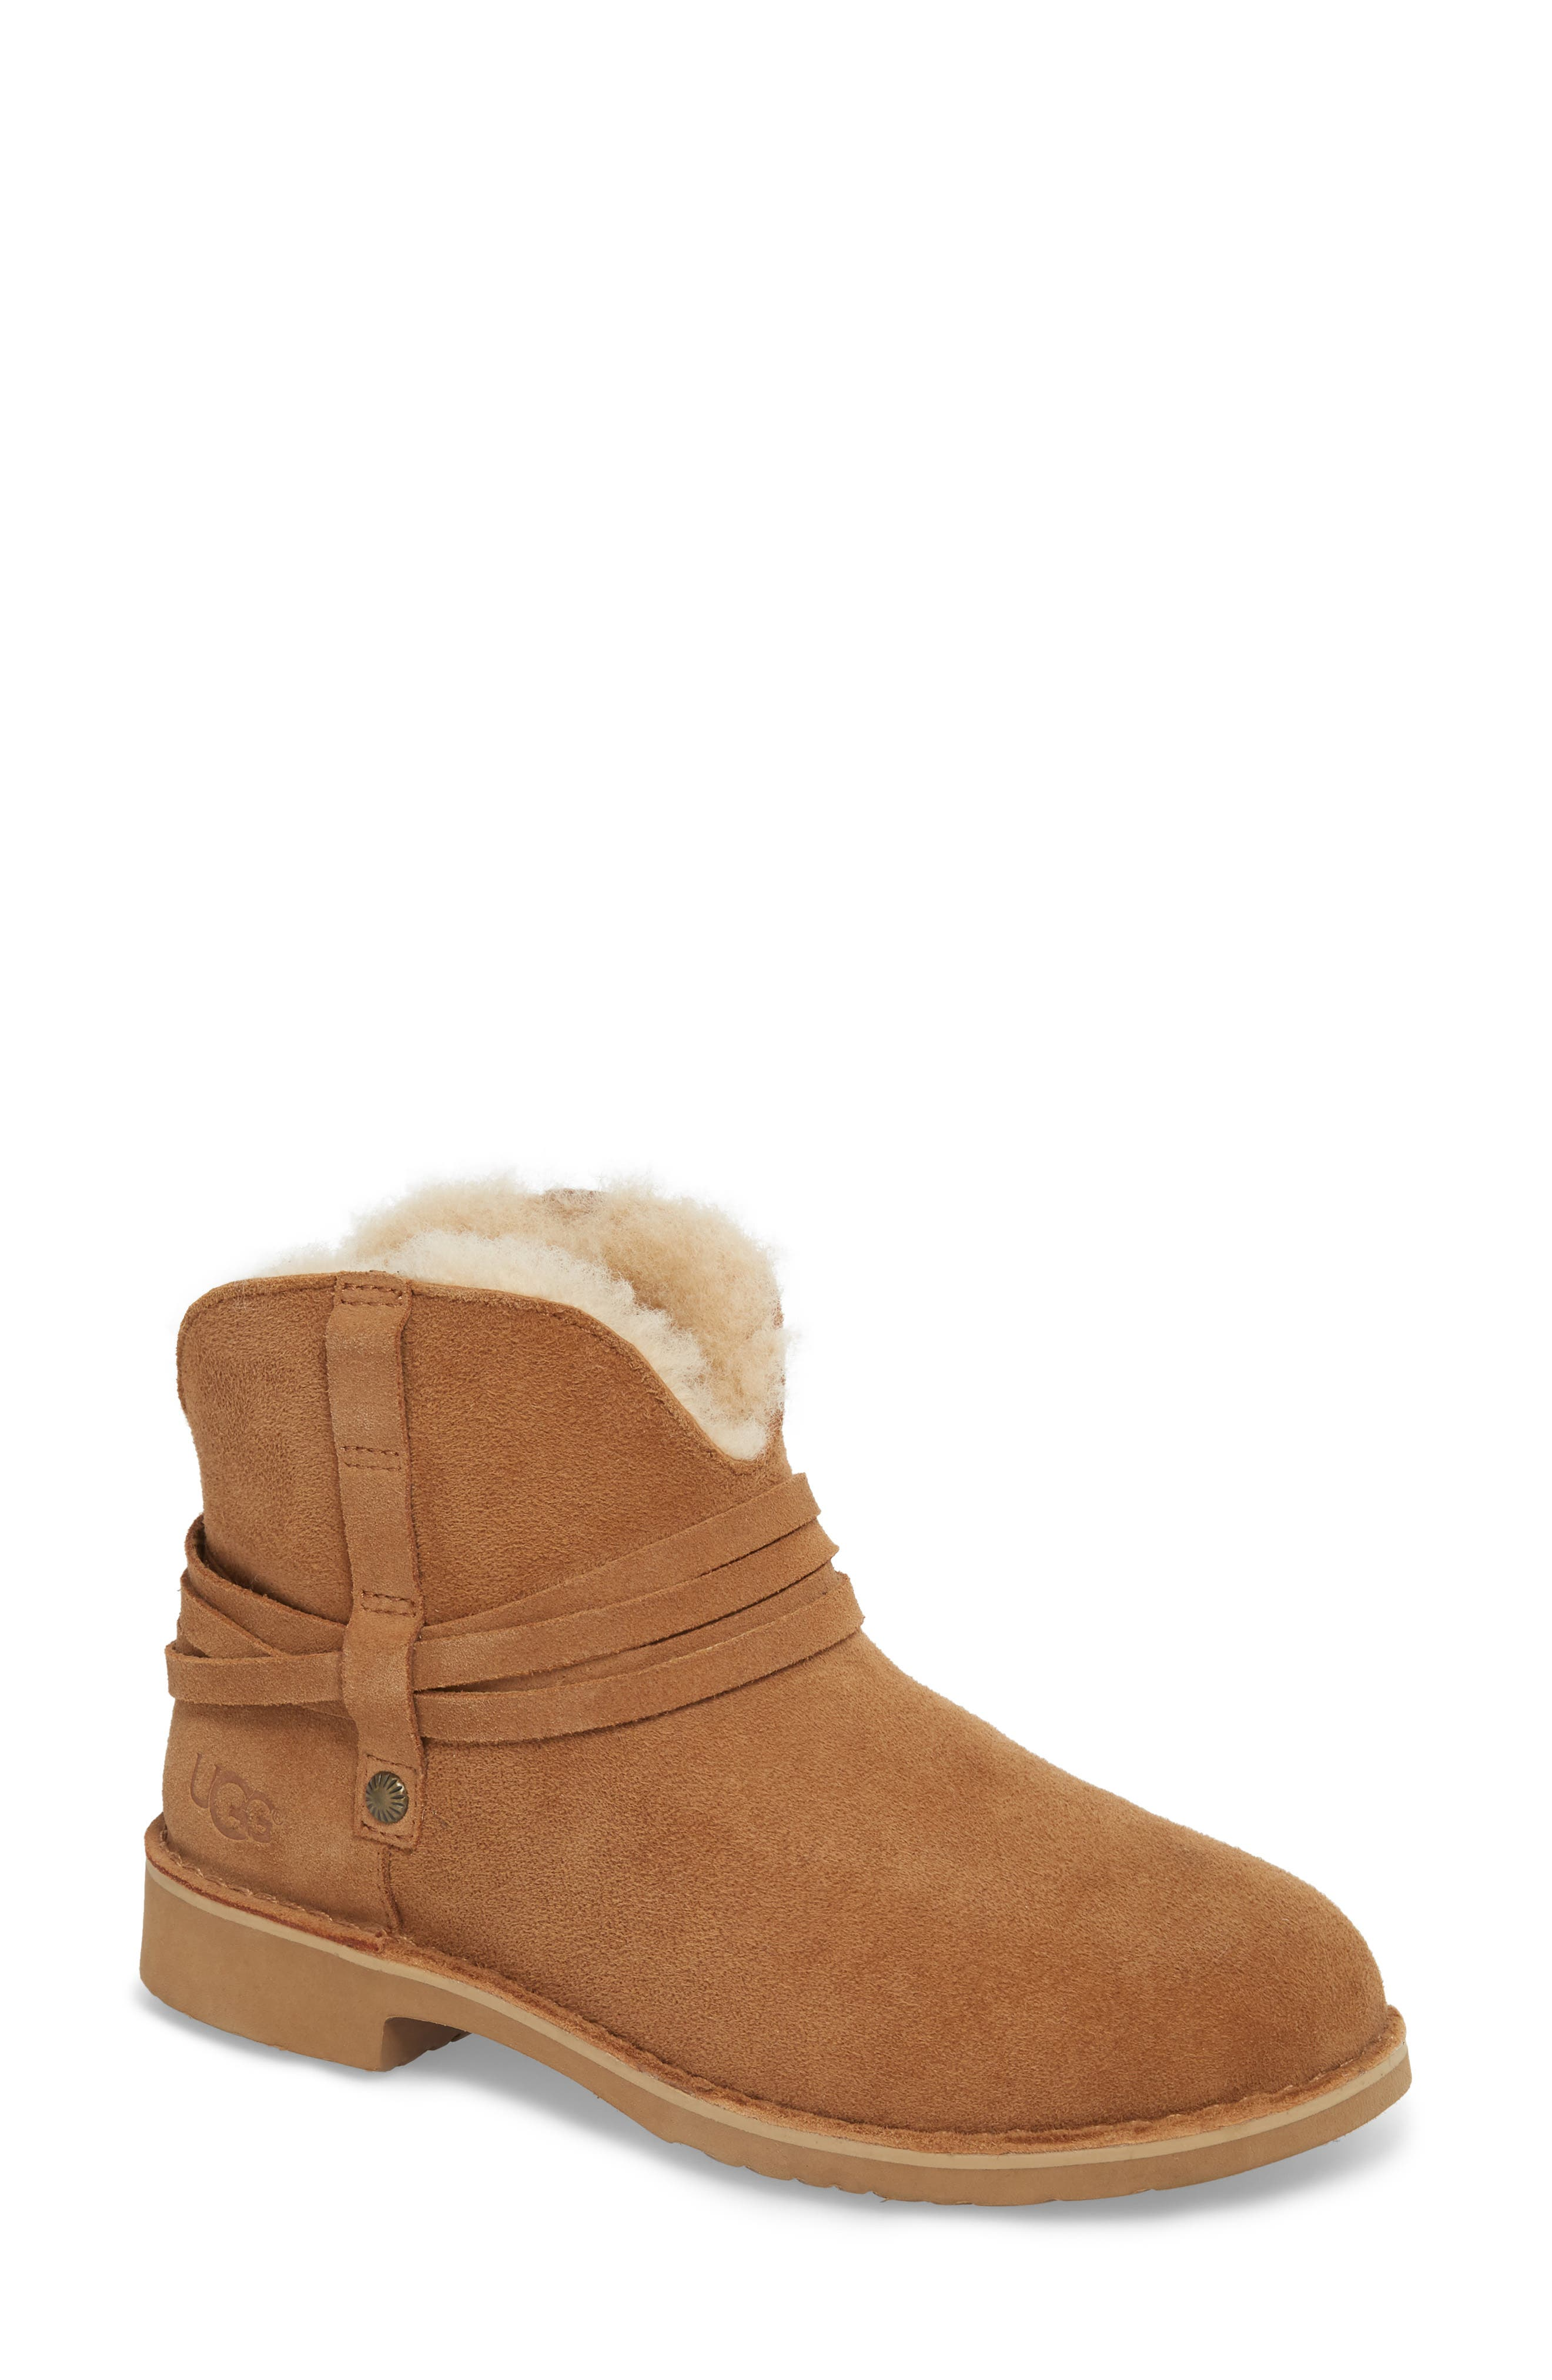 Pasqual Boot,                             Main thumbnail 1, color,                             CHESTNUT SUEDE